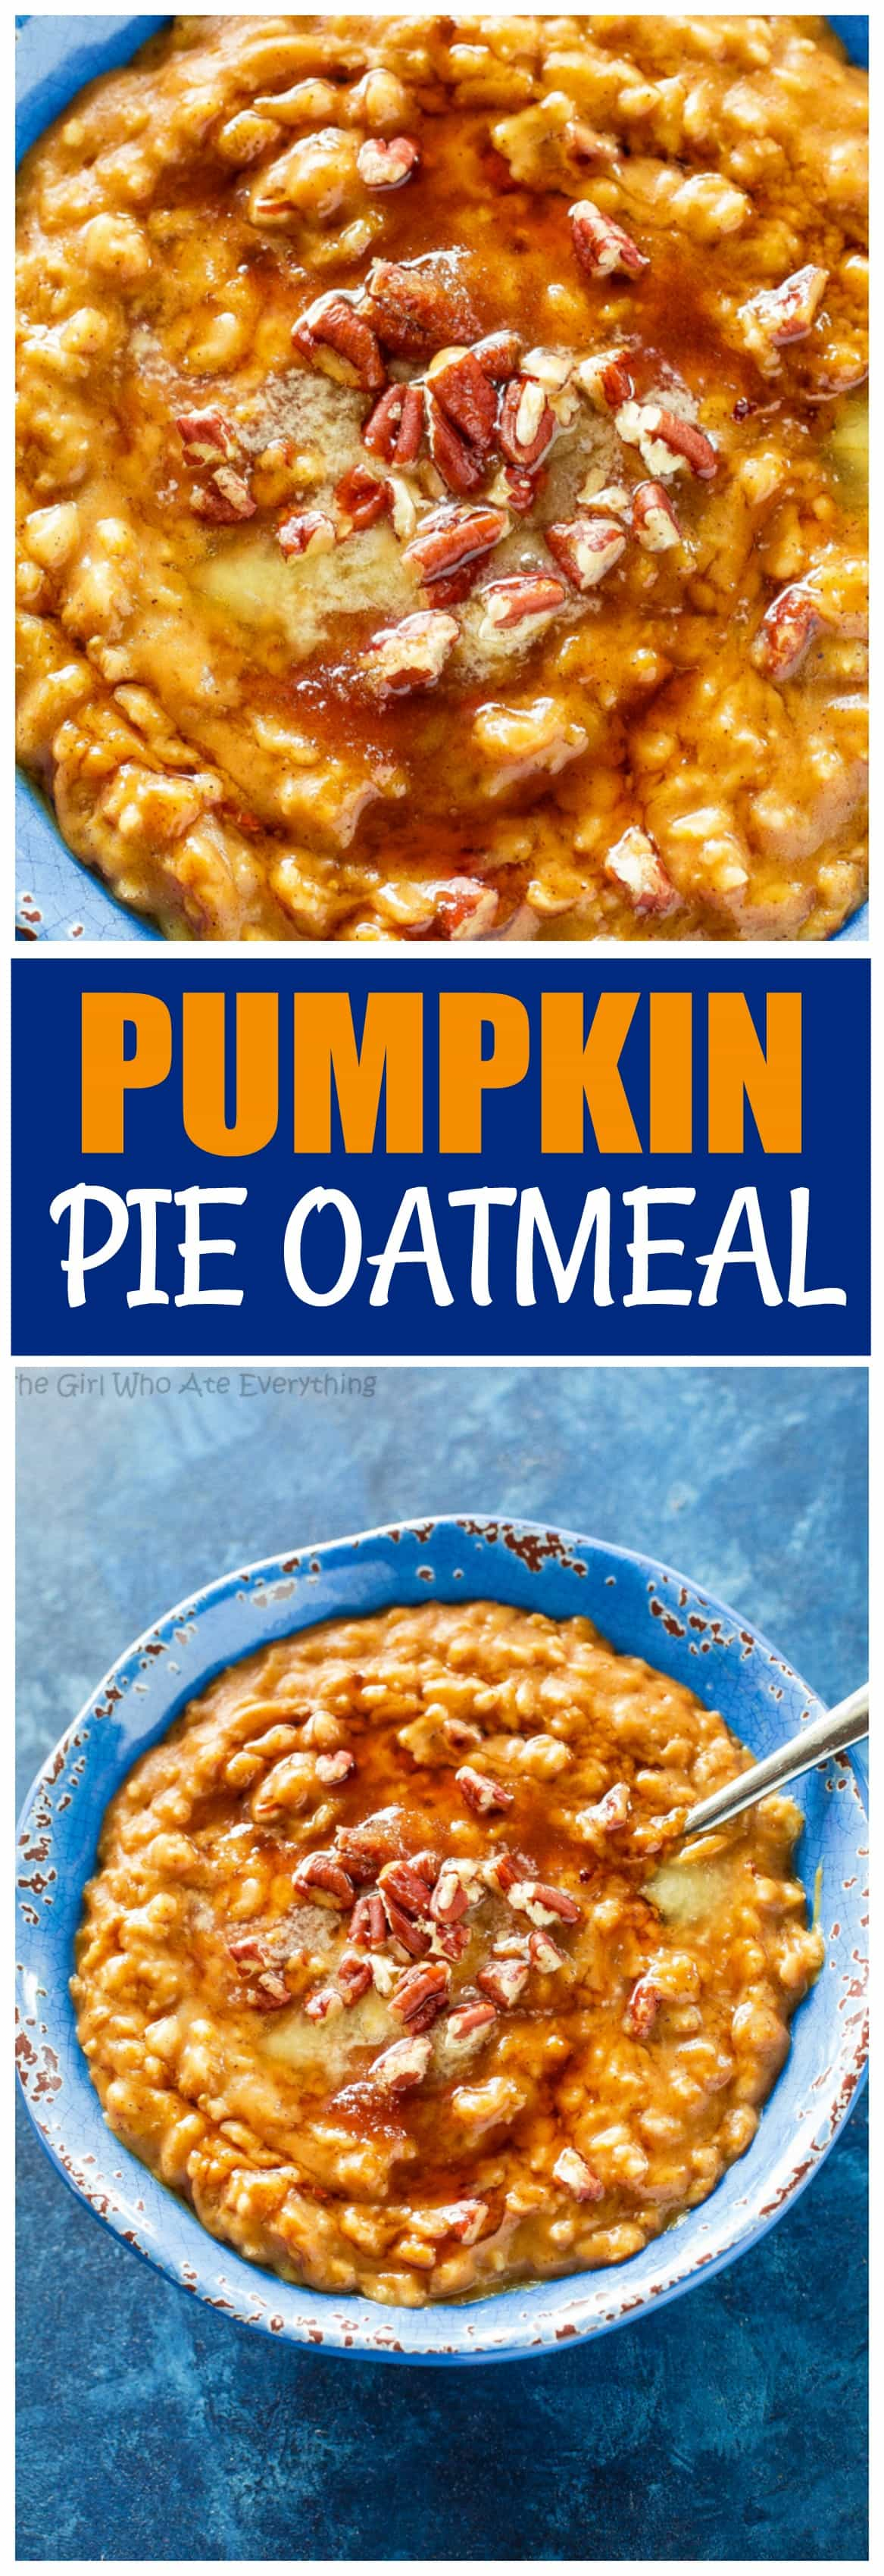 This Pumpkin Pie Oatmeal is a fast and easy fall breakfast full of pumpkin spice. Top with pecans and a drizzle of maple syrup for a real treat. the-girl-who-ate-everything.com